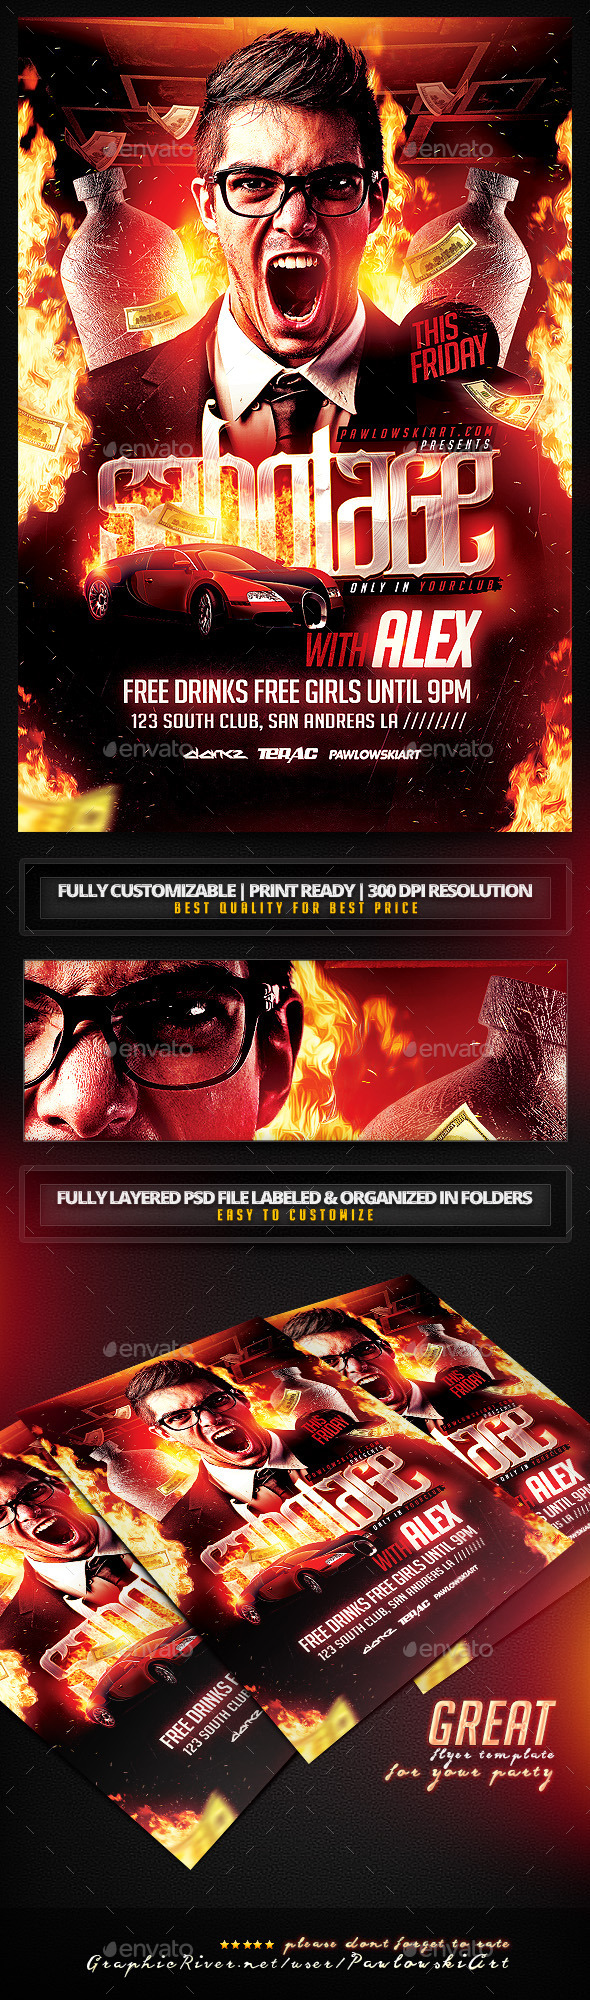 Sabotage Party Flyer PSD Template - Clubs & Parties Events